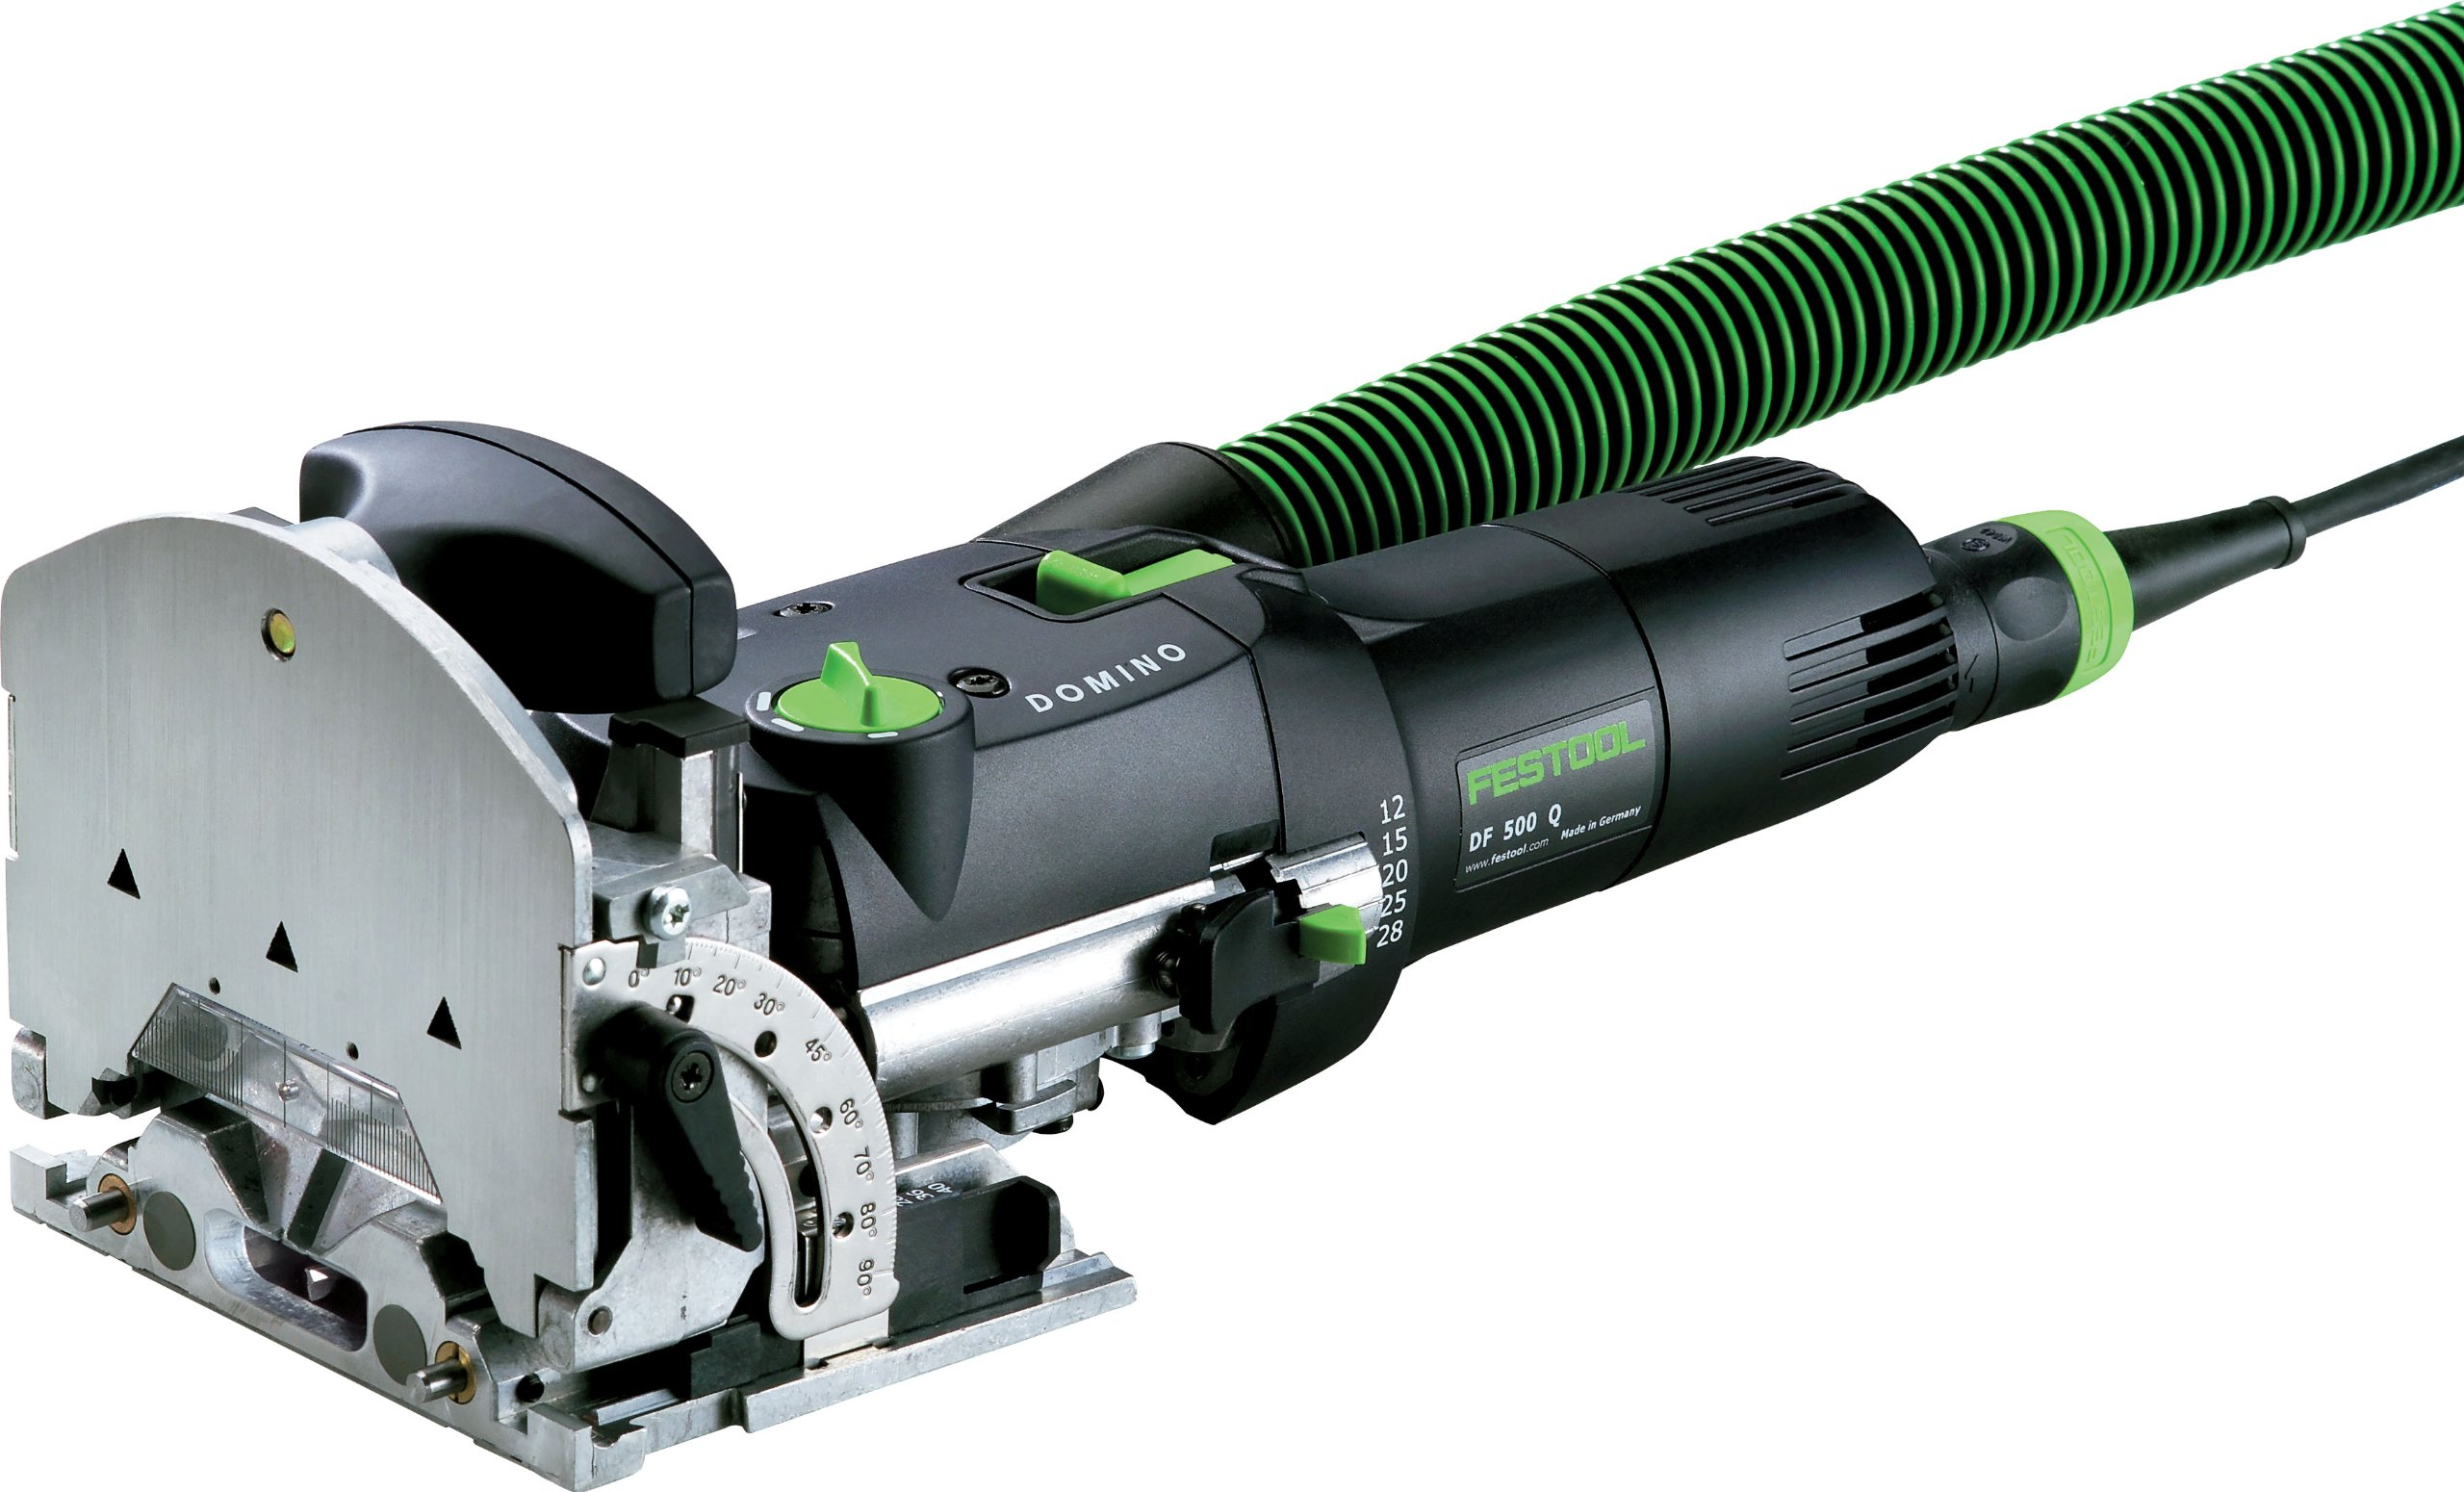 Festool 574432 Domino Joiner DF 500 Q Set by Festool